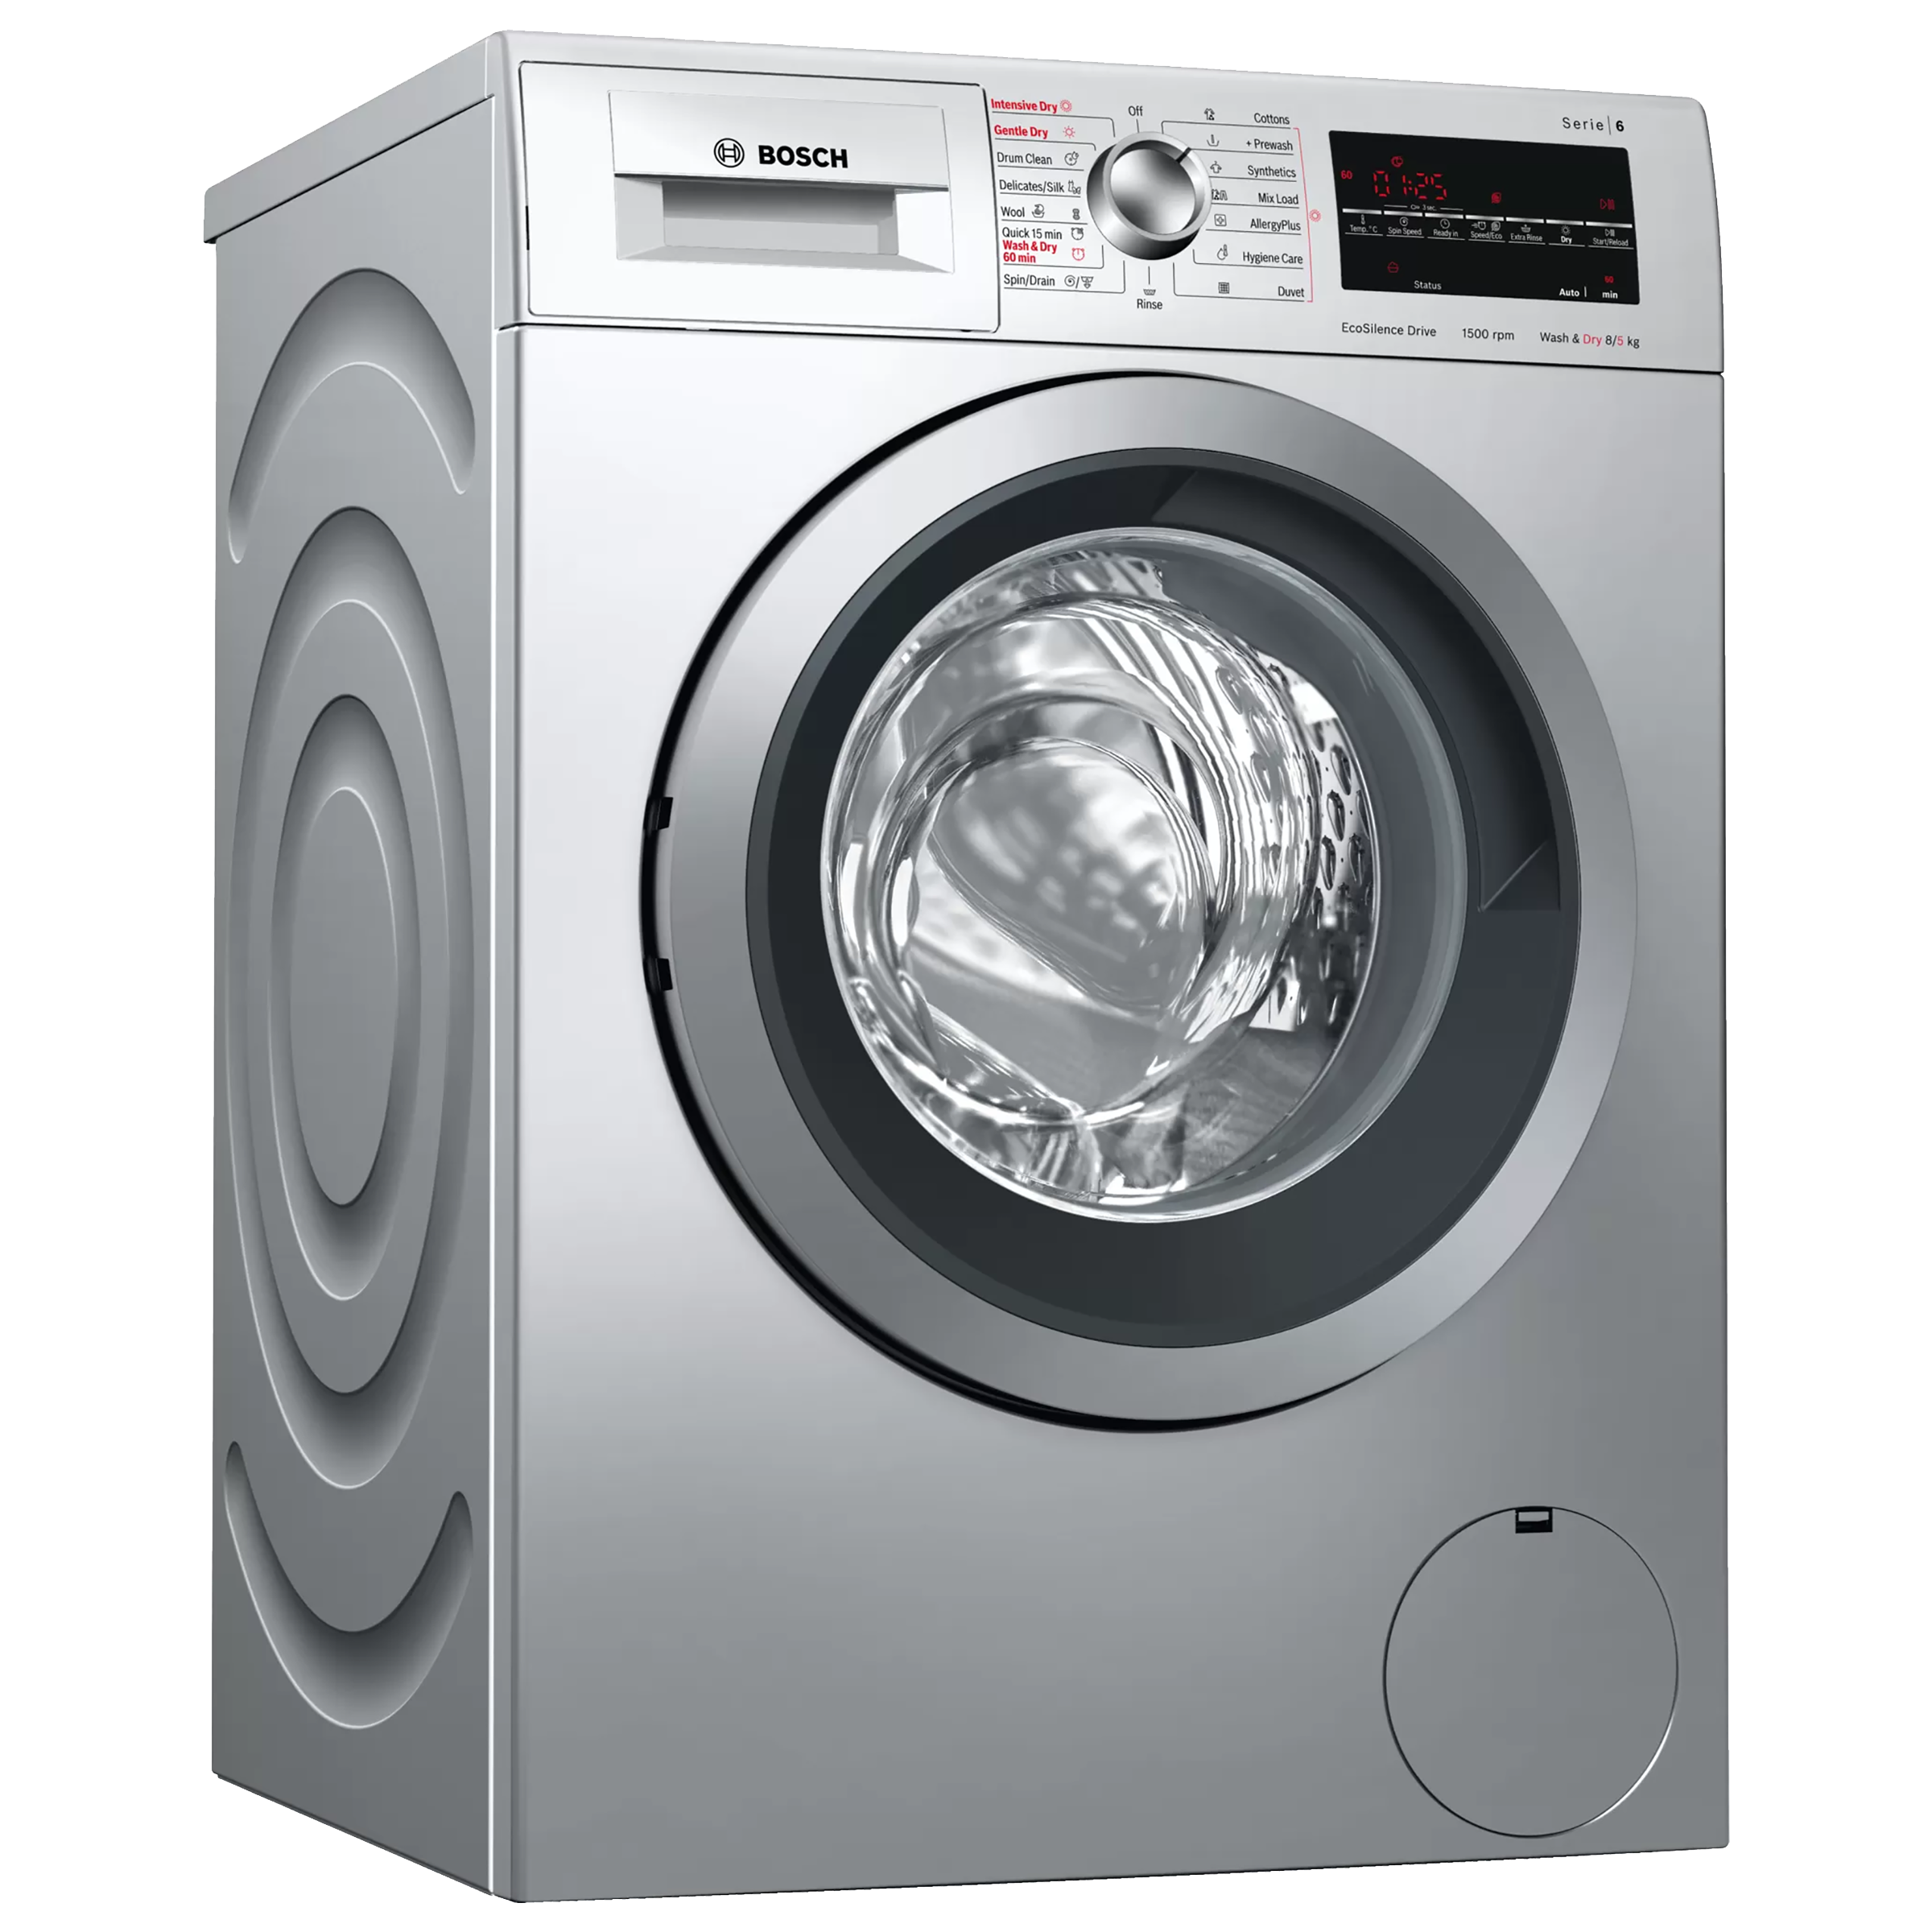 Bosch Serie 6 8 kg/5kg Fully Automatic Front Load Washer Dryer Combo (In-built Heater, WVG3046SIN, Silver)_1